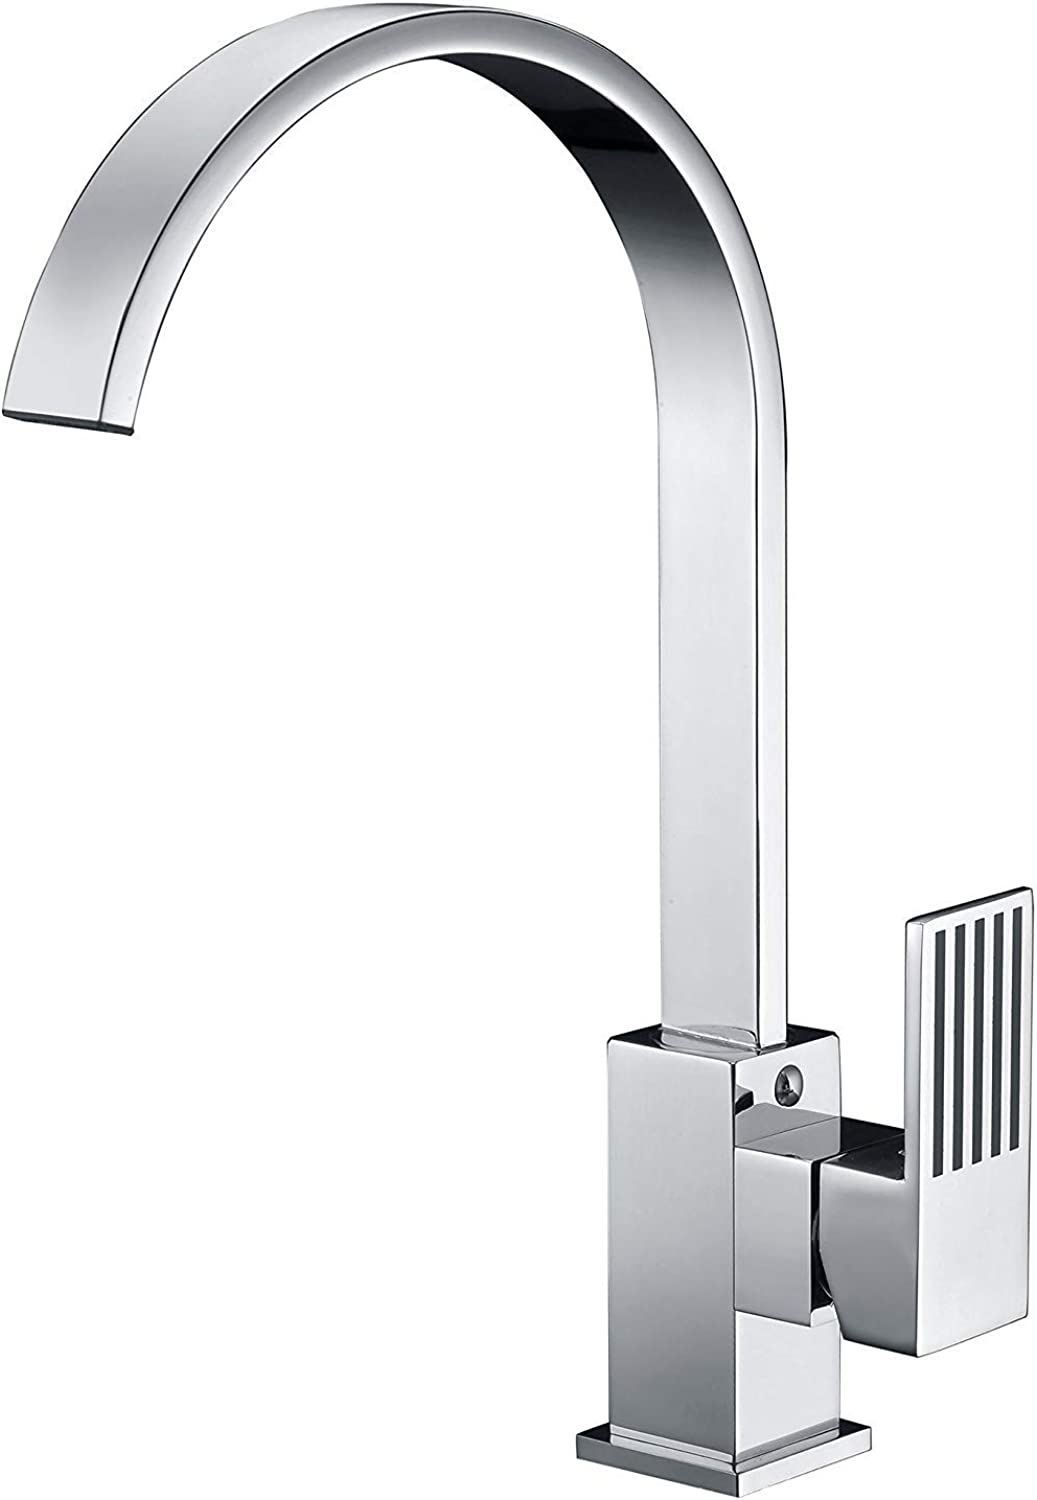 YBHNB Kitchen Sink Tap, Chrome-plated Copper Kitchen Hot and Cold Water Taps Wide Mouth Waterfall Basin Taps Single Hole Sink Tap